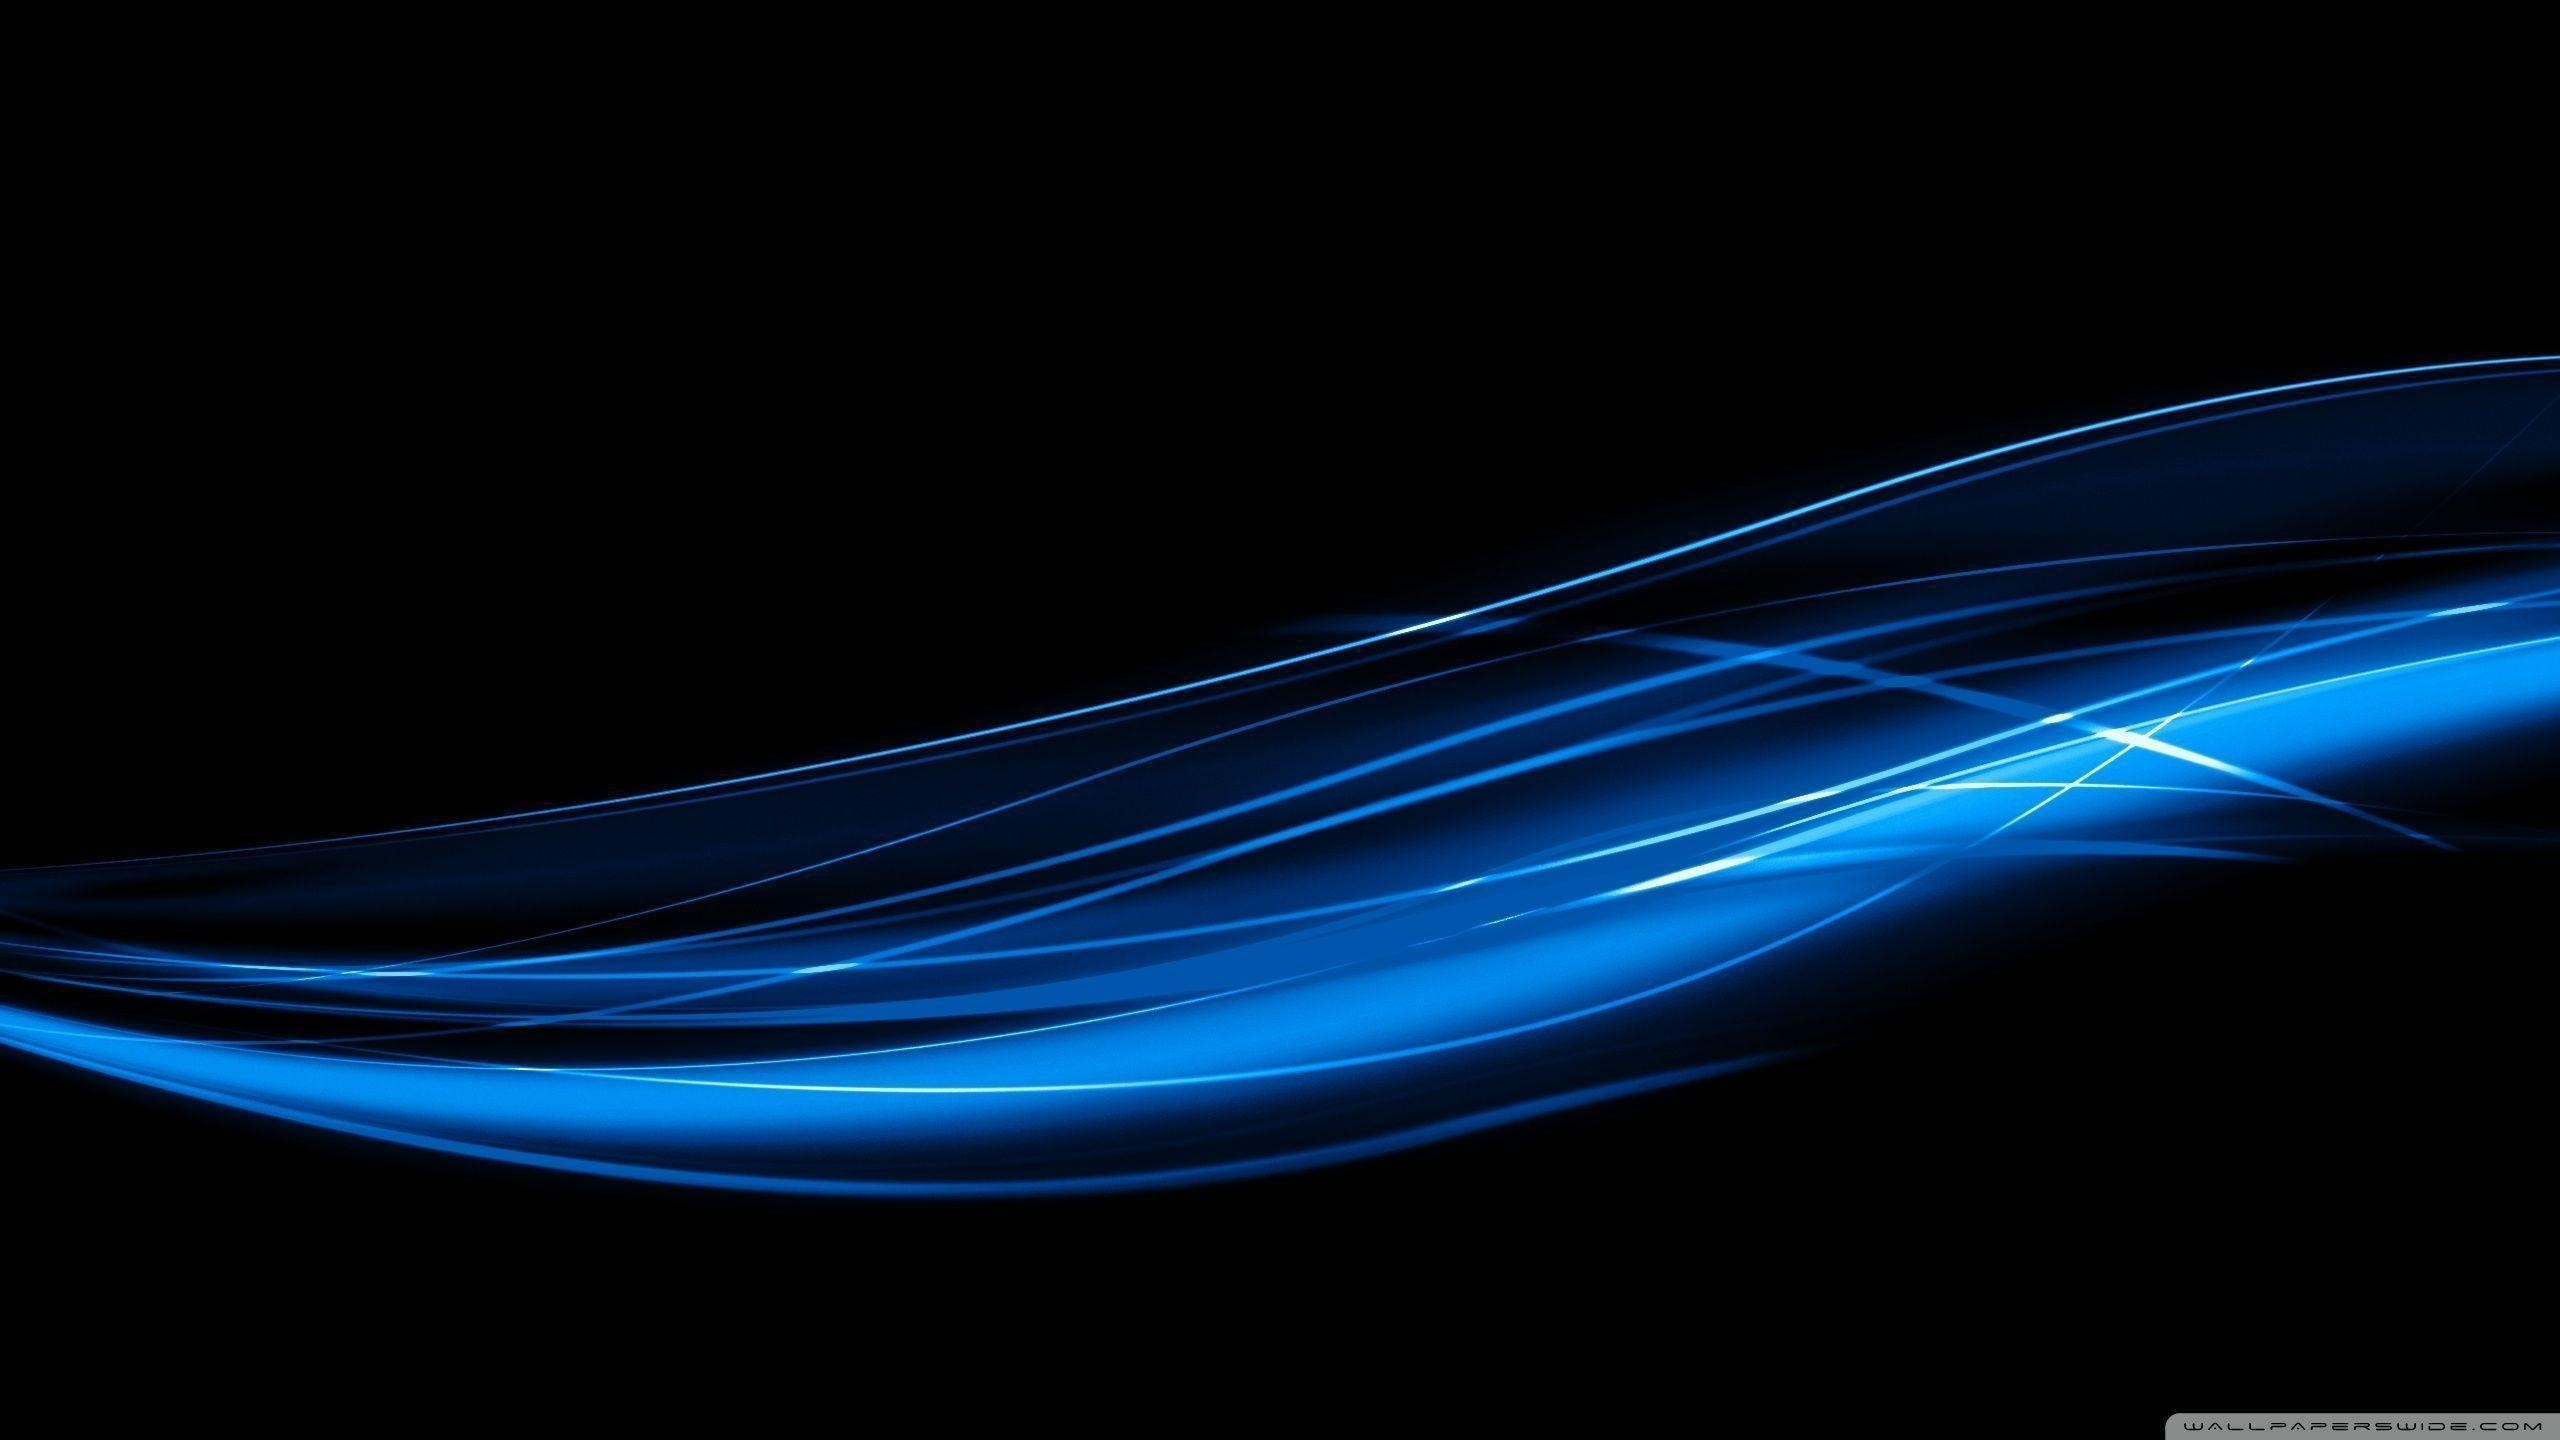 Title Black And Blue Backgrounds Wallpaper Cave Dimension 2560 X 1440 File Type JPG JPEG